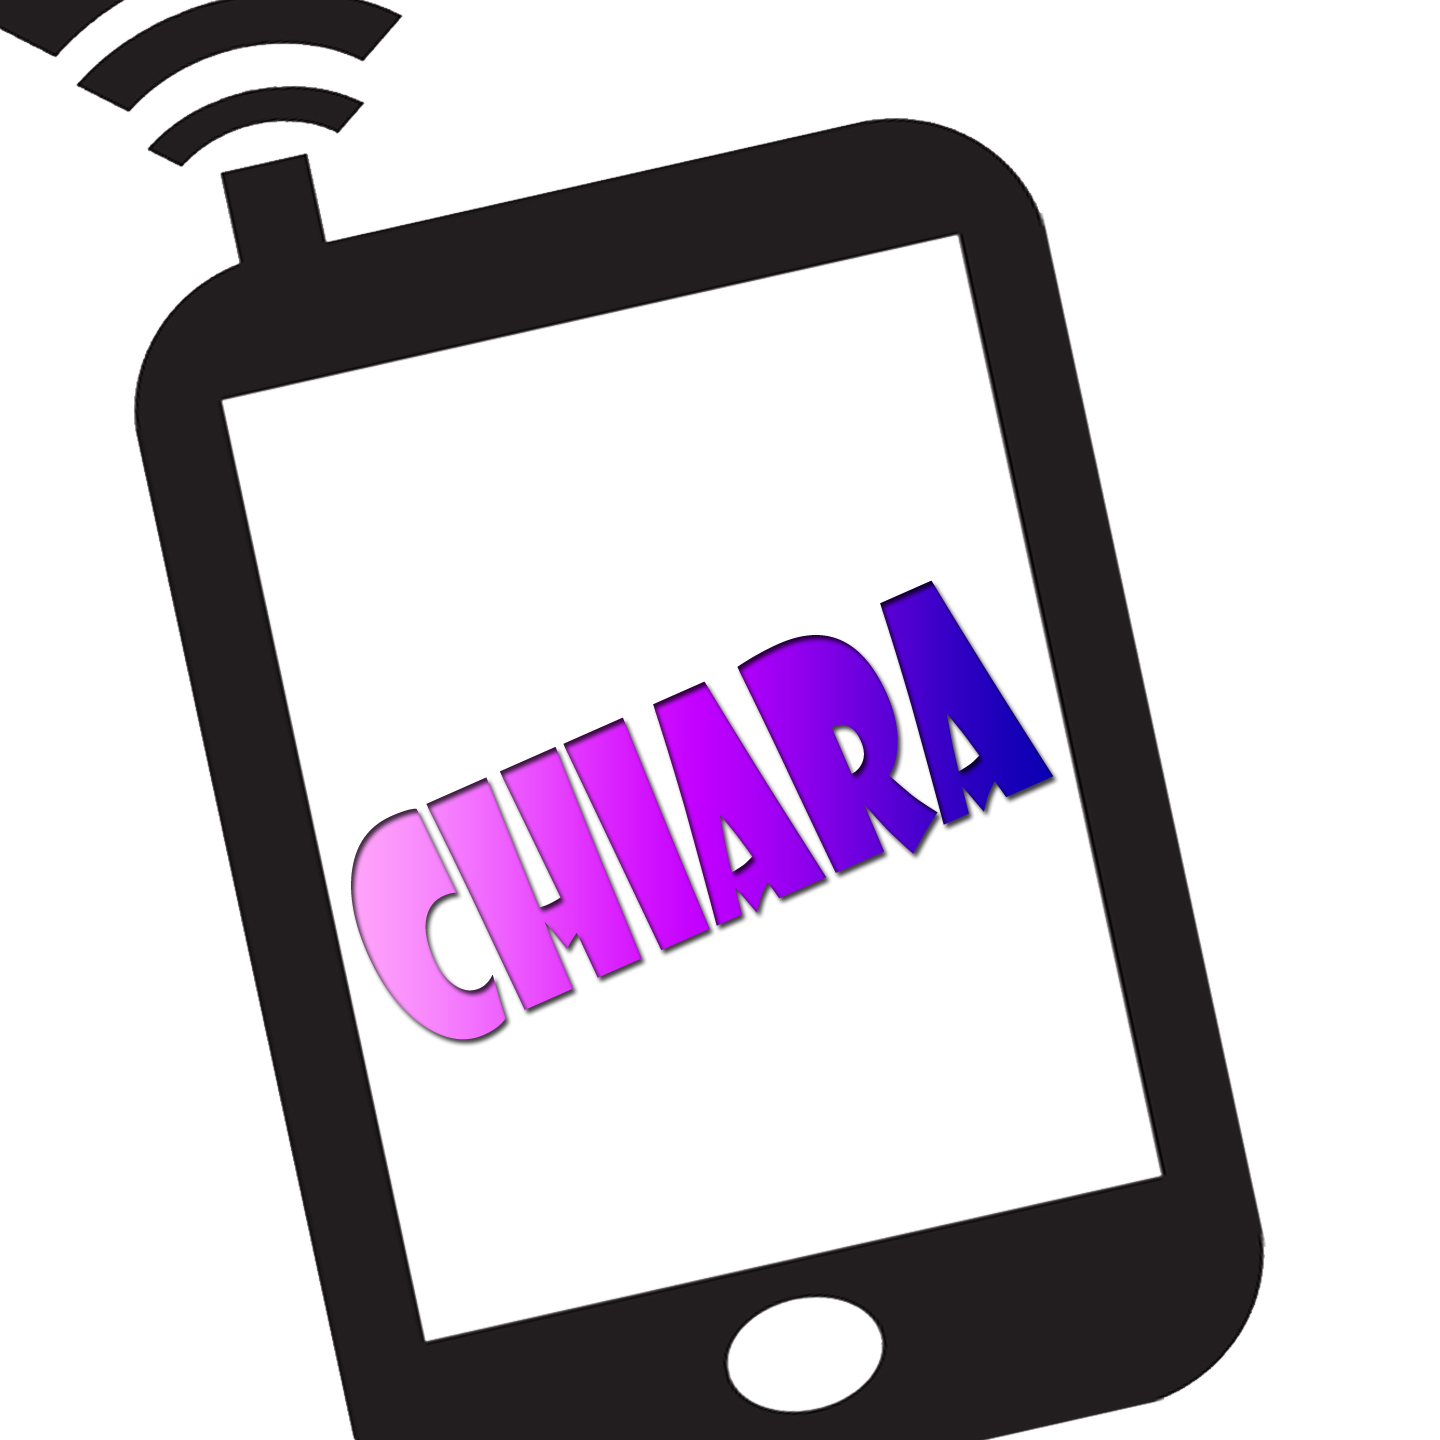 Chiara is calling you